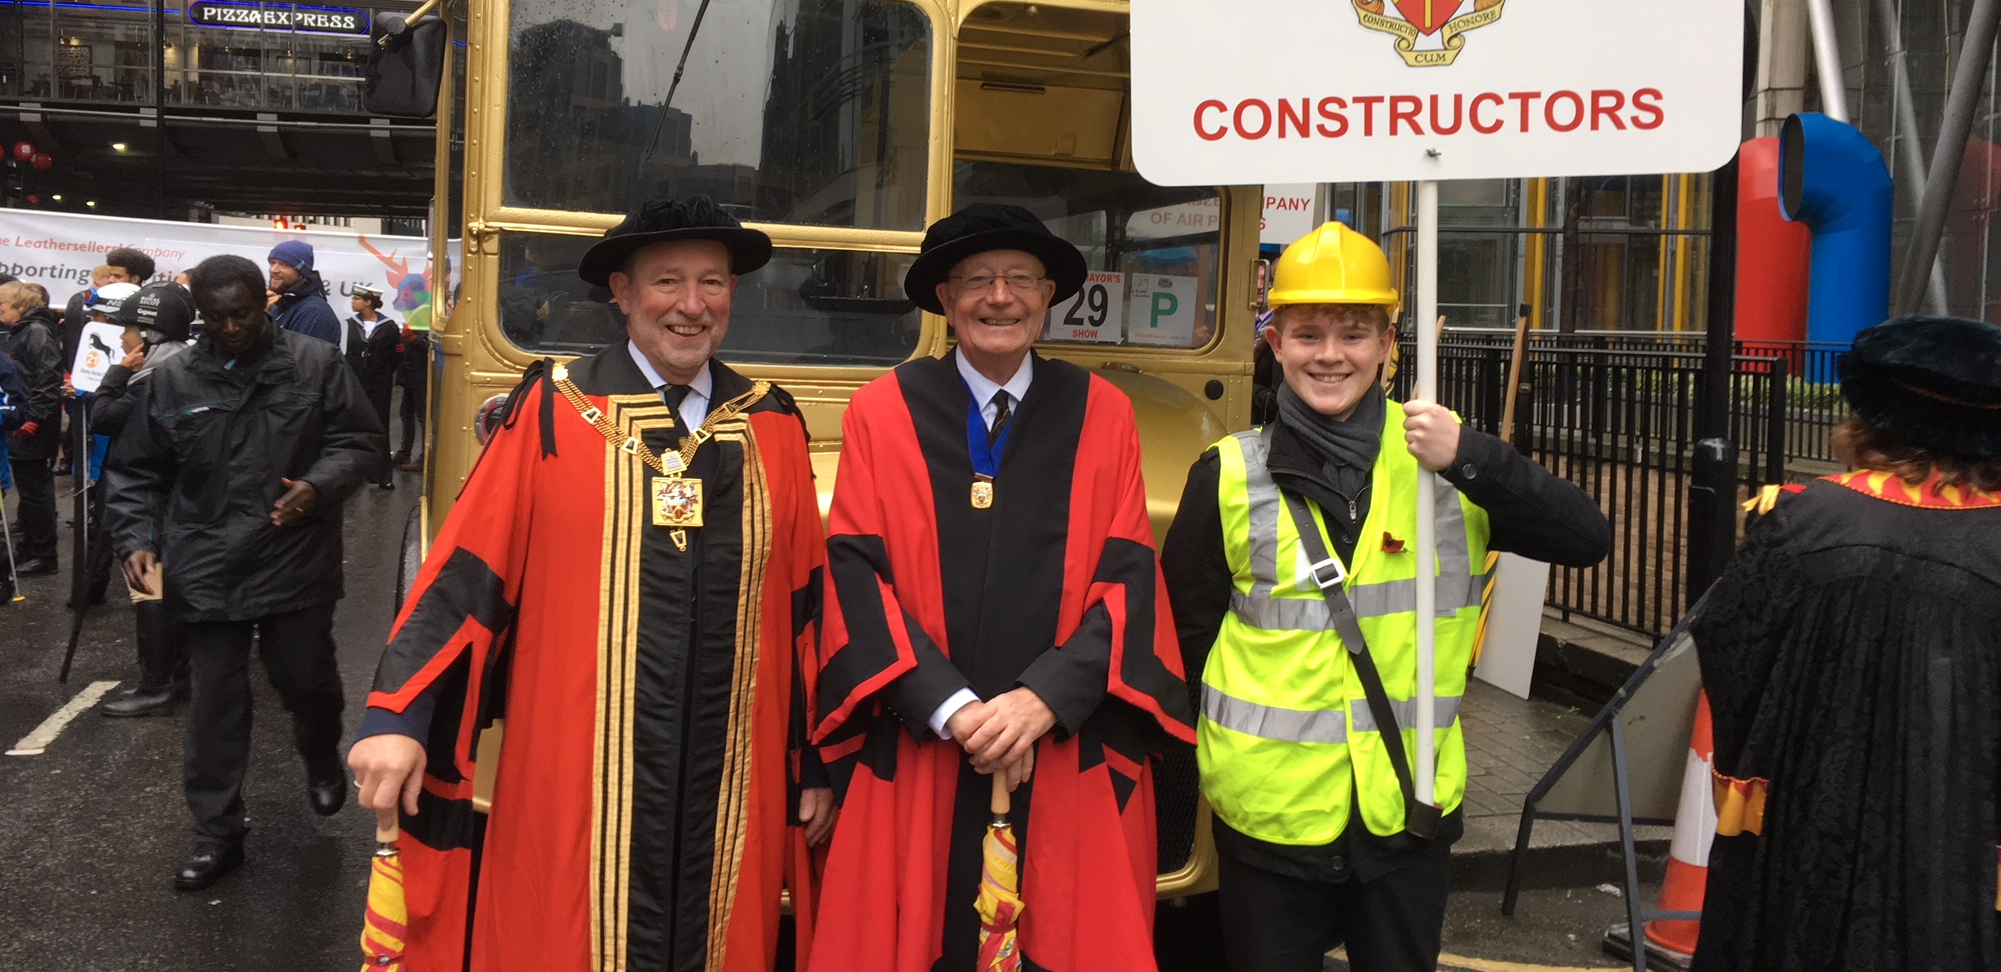 The Master And Junior Warden Together With Apprentice Jack Holmes At The 2017 Lord Mayor's Show